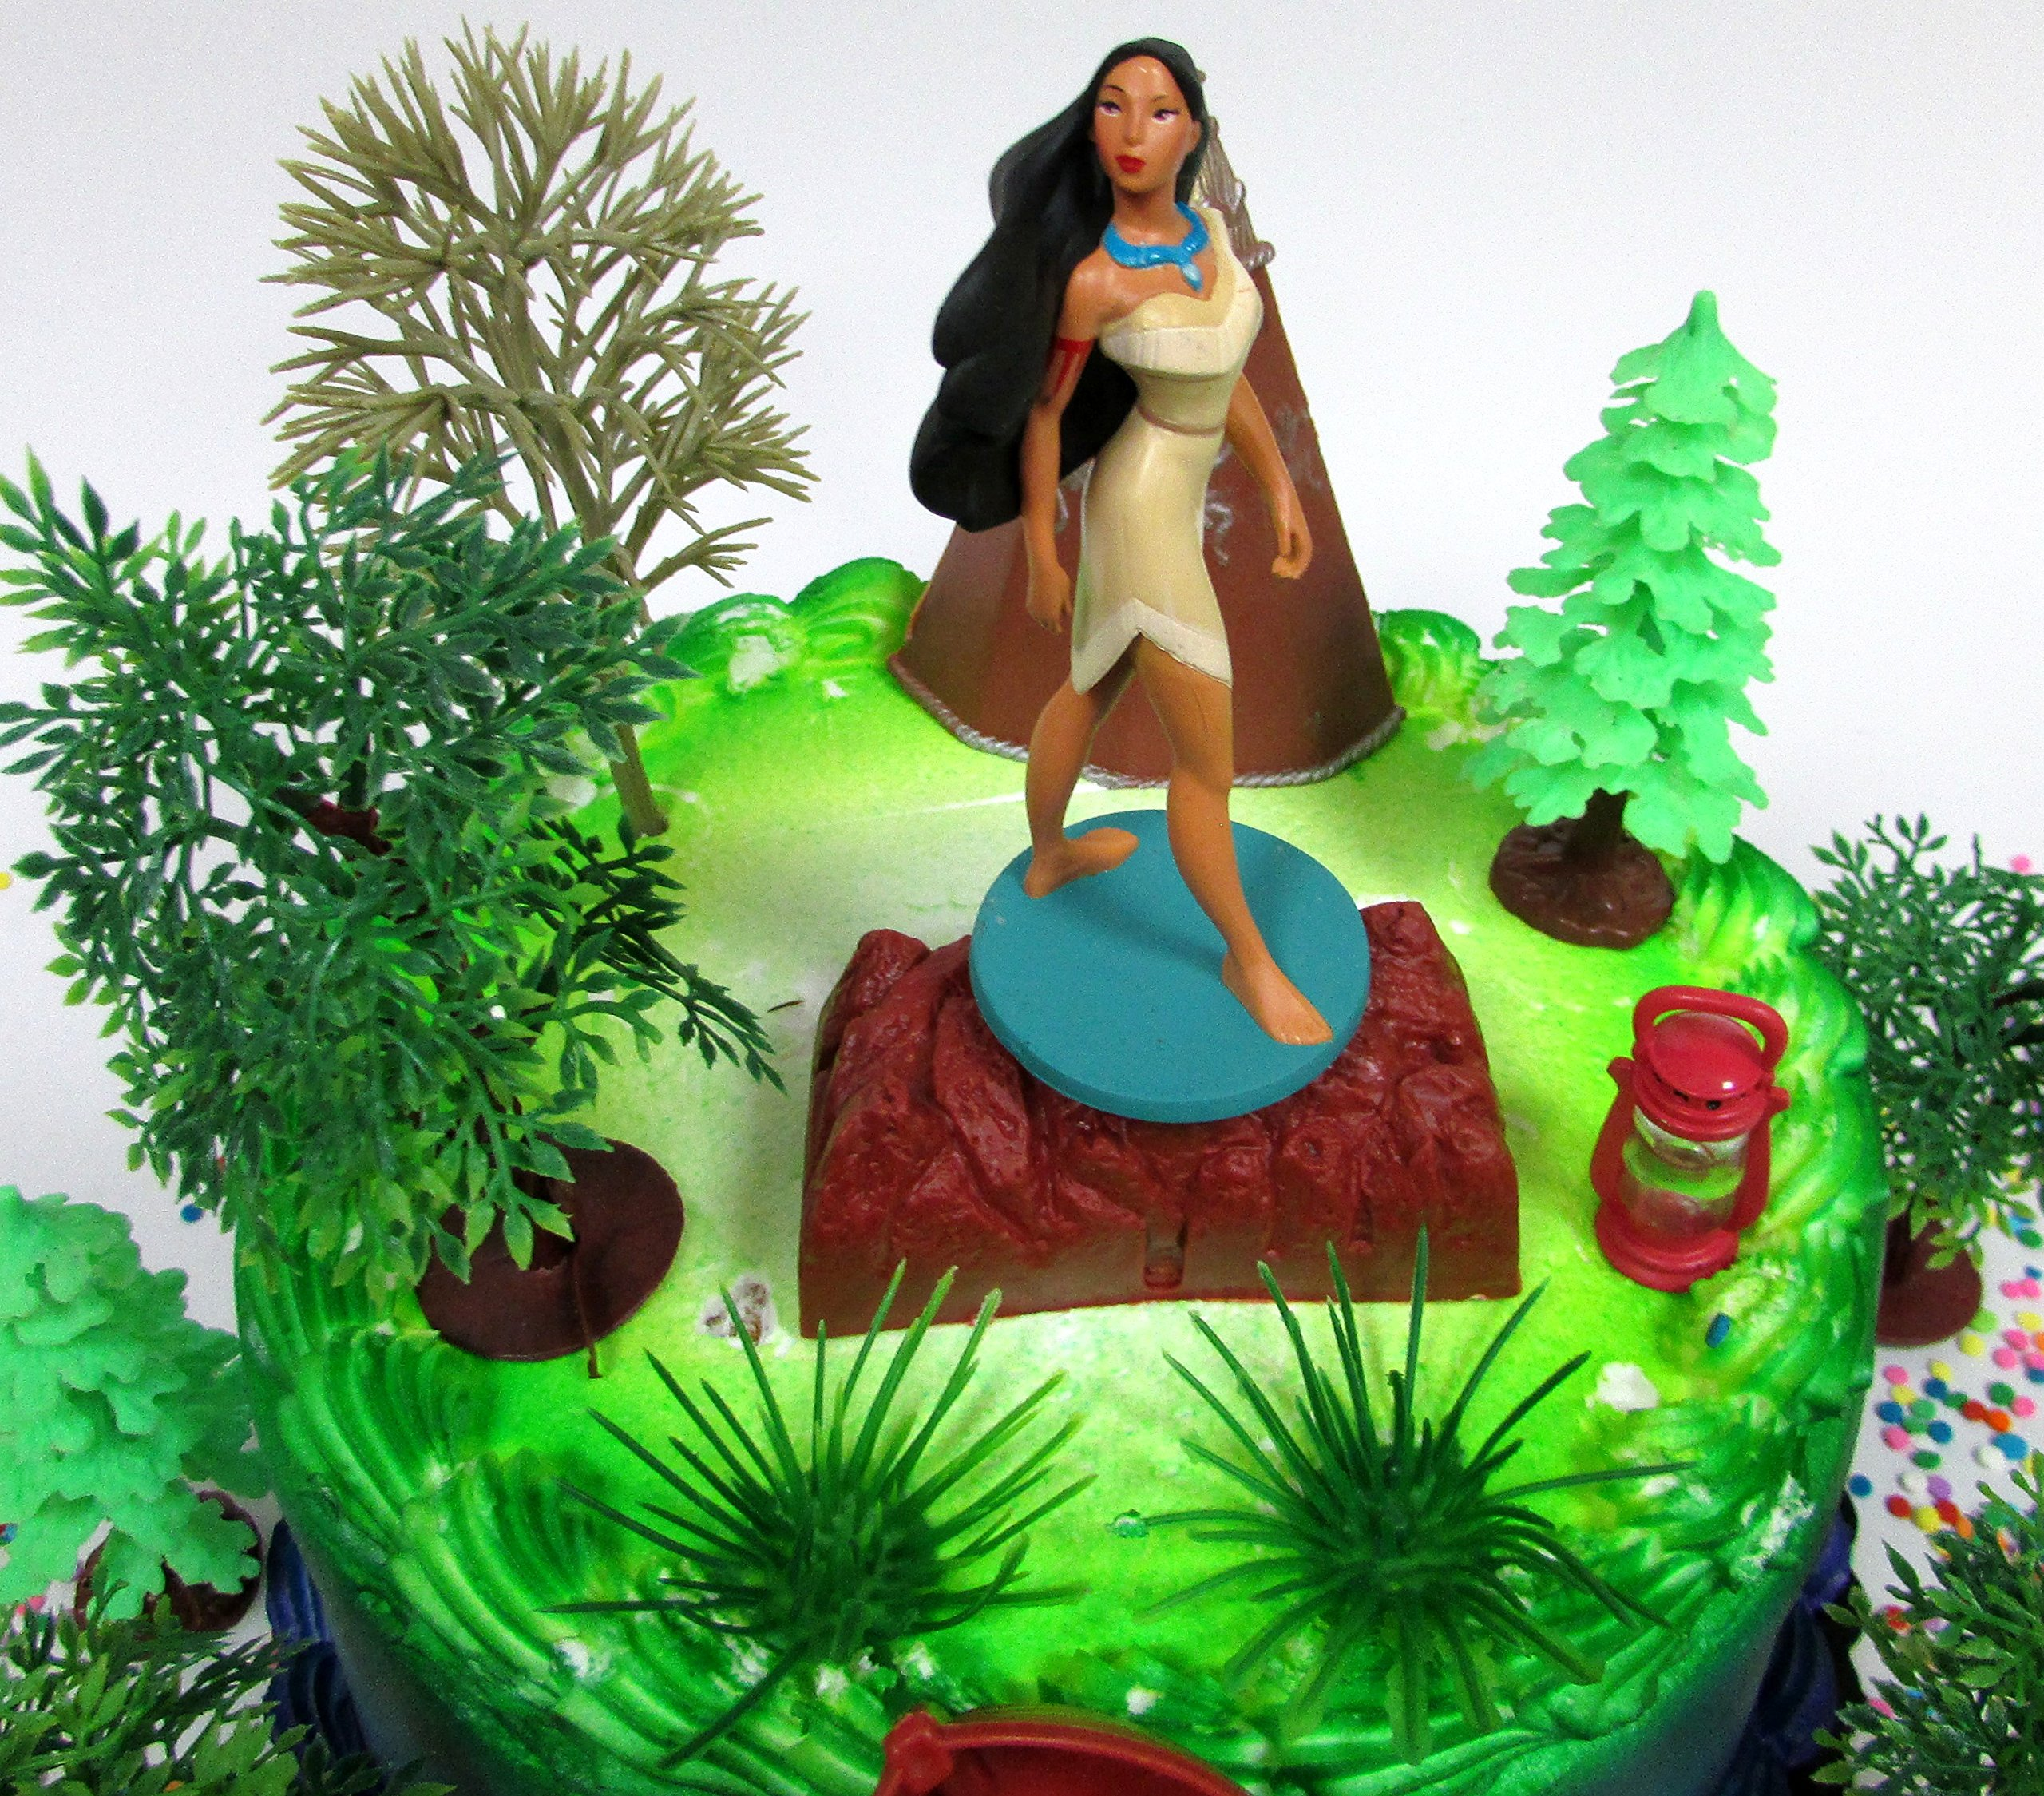 Pocahontas Themed PRINCESS POCAHONTAS Birthday Cake Topper Set Featuring Pocahontas Figure and Decorative Accessories by Cake Toppers (Image #2)